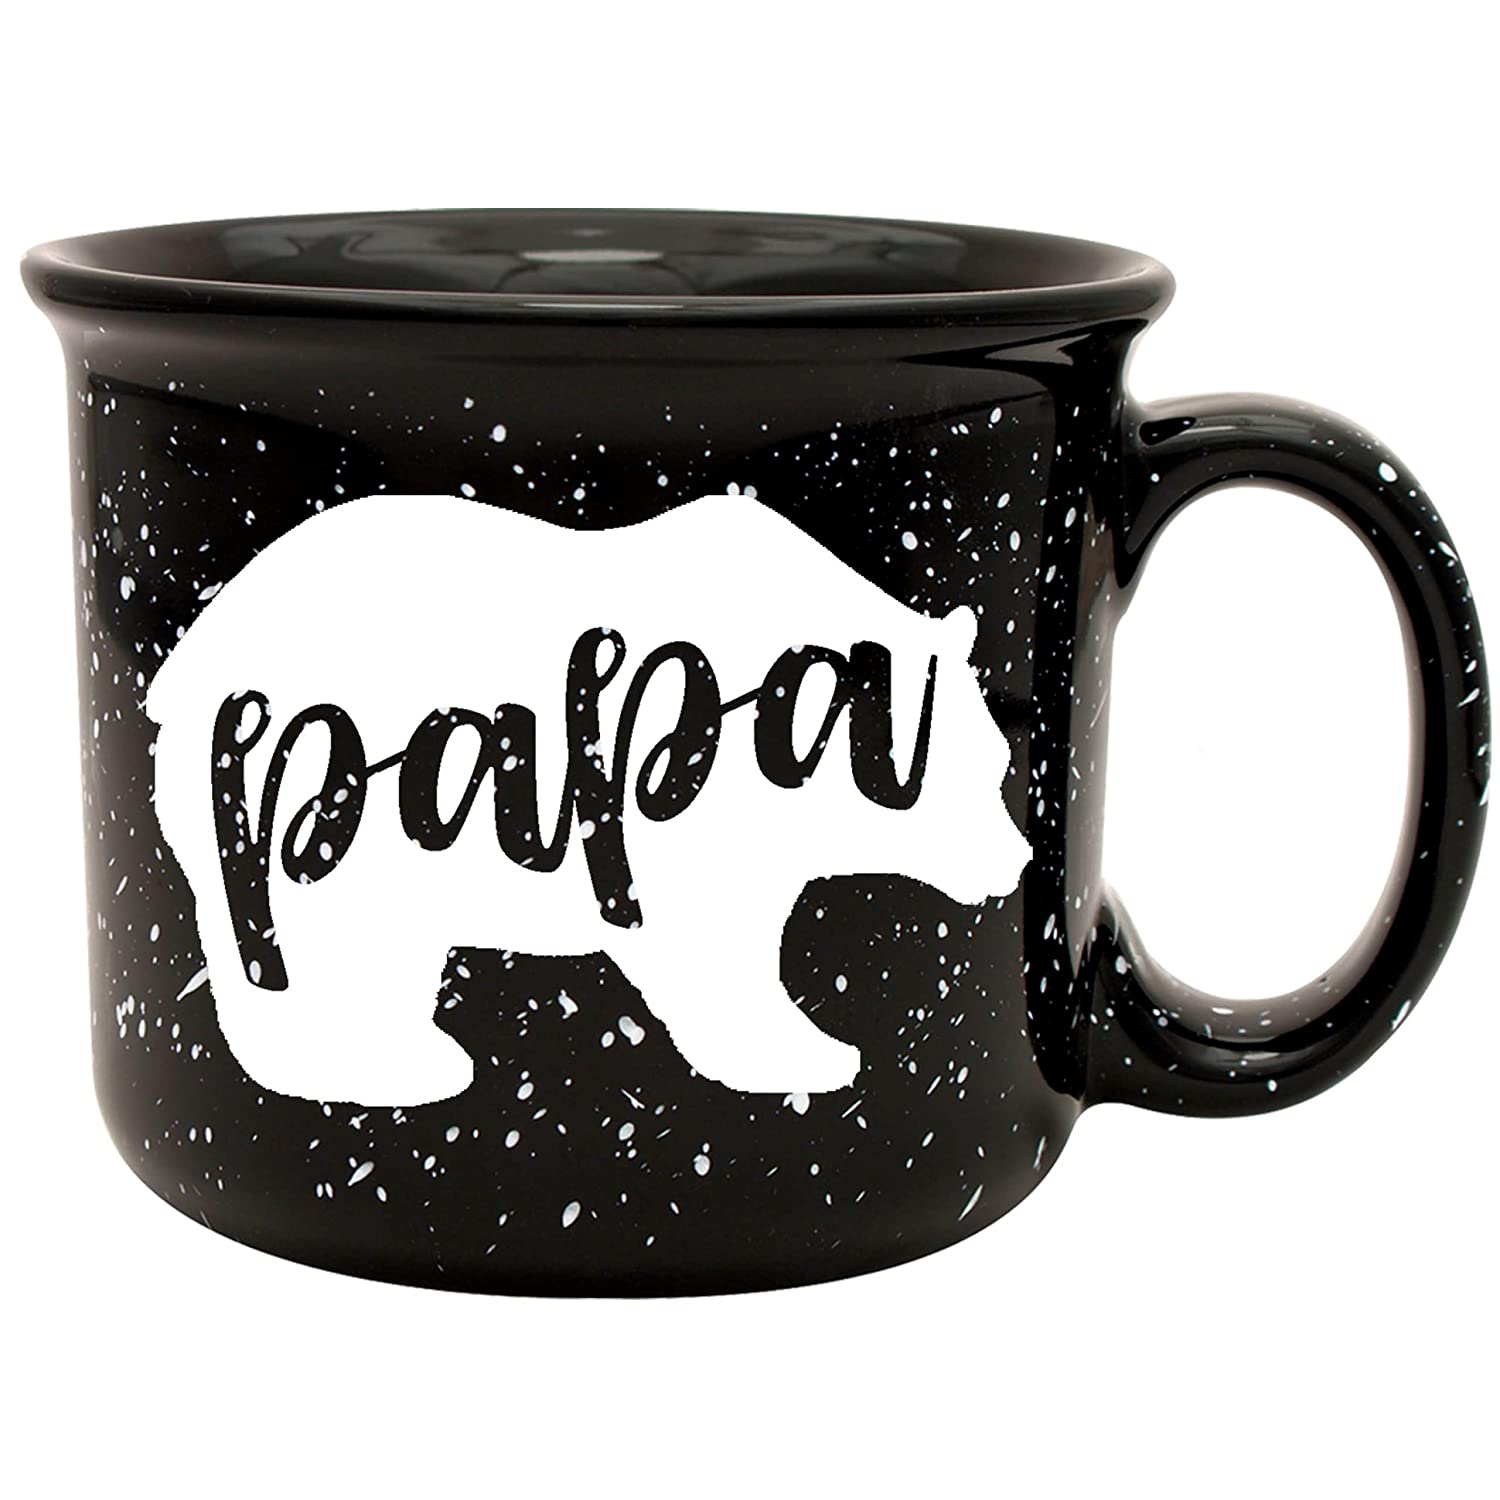 Papa Bear Coffee Mug for Dad, Father, Grandpa, Husband - Unique Fun Gifts for Men, Father's Day, Christmas (Black)